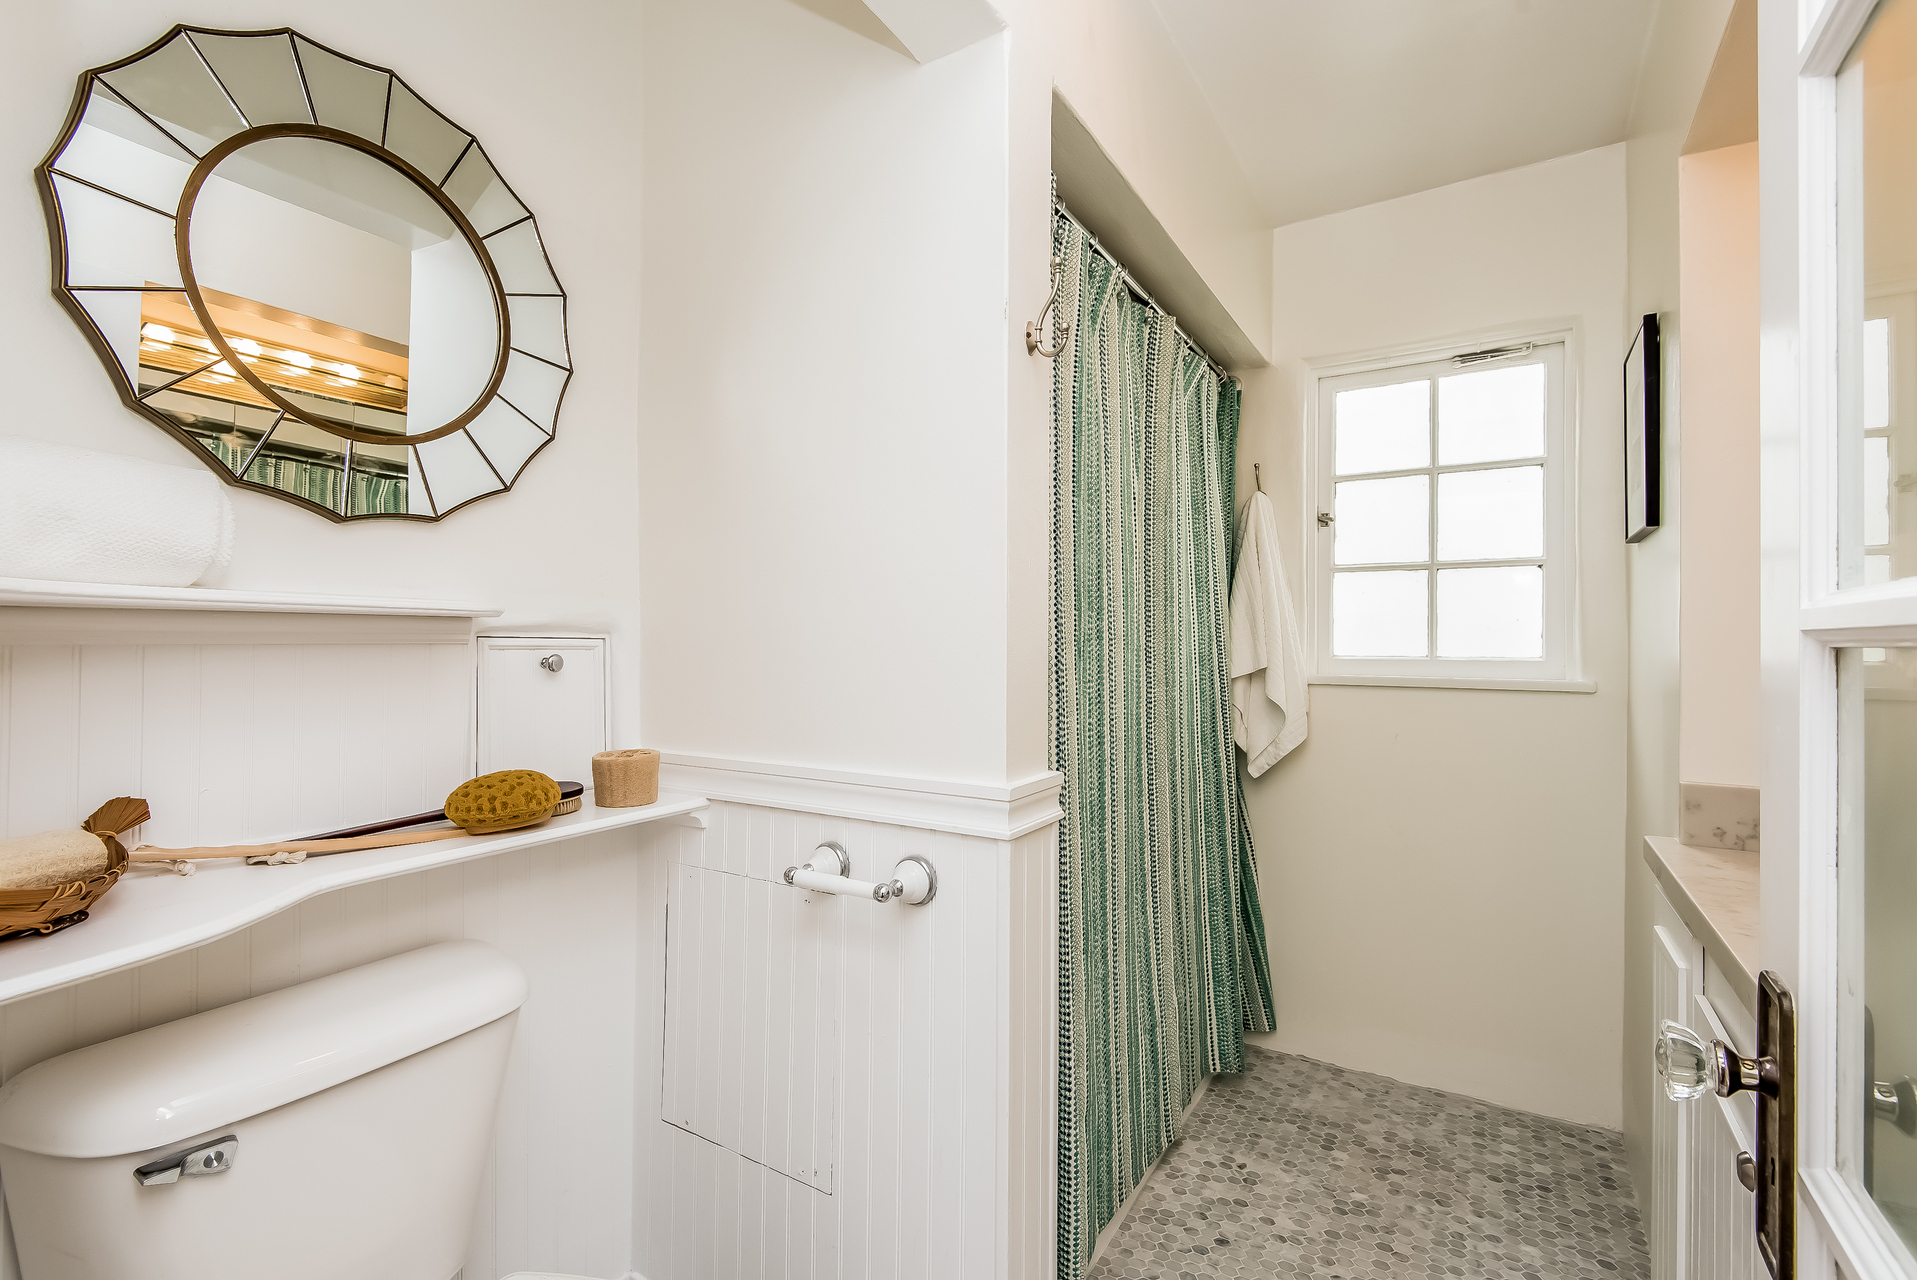 021-Bathroom-2860442-medium.jpg